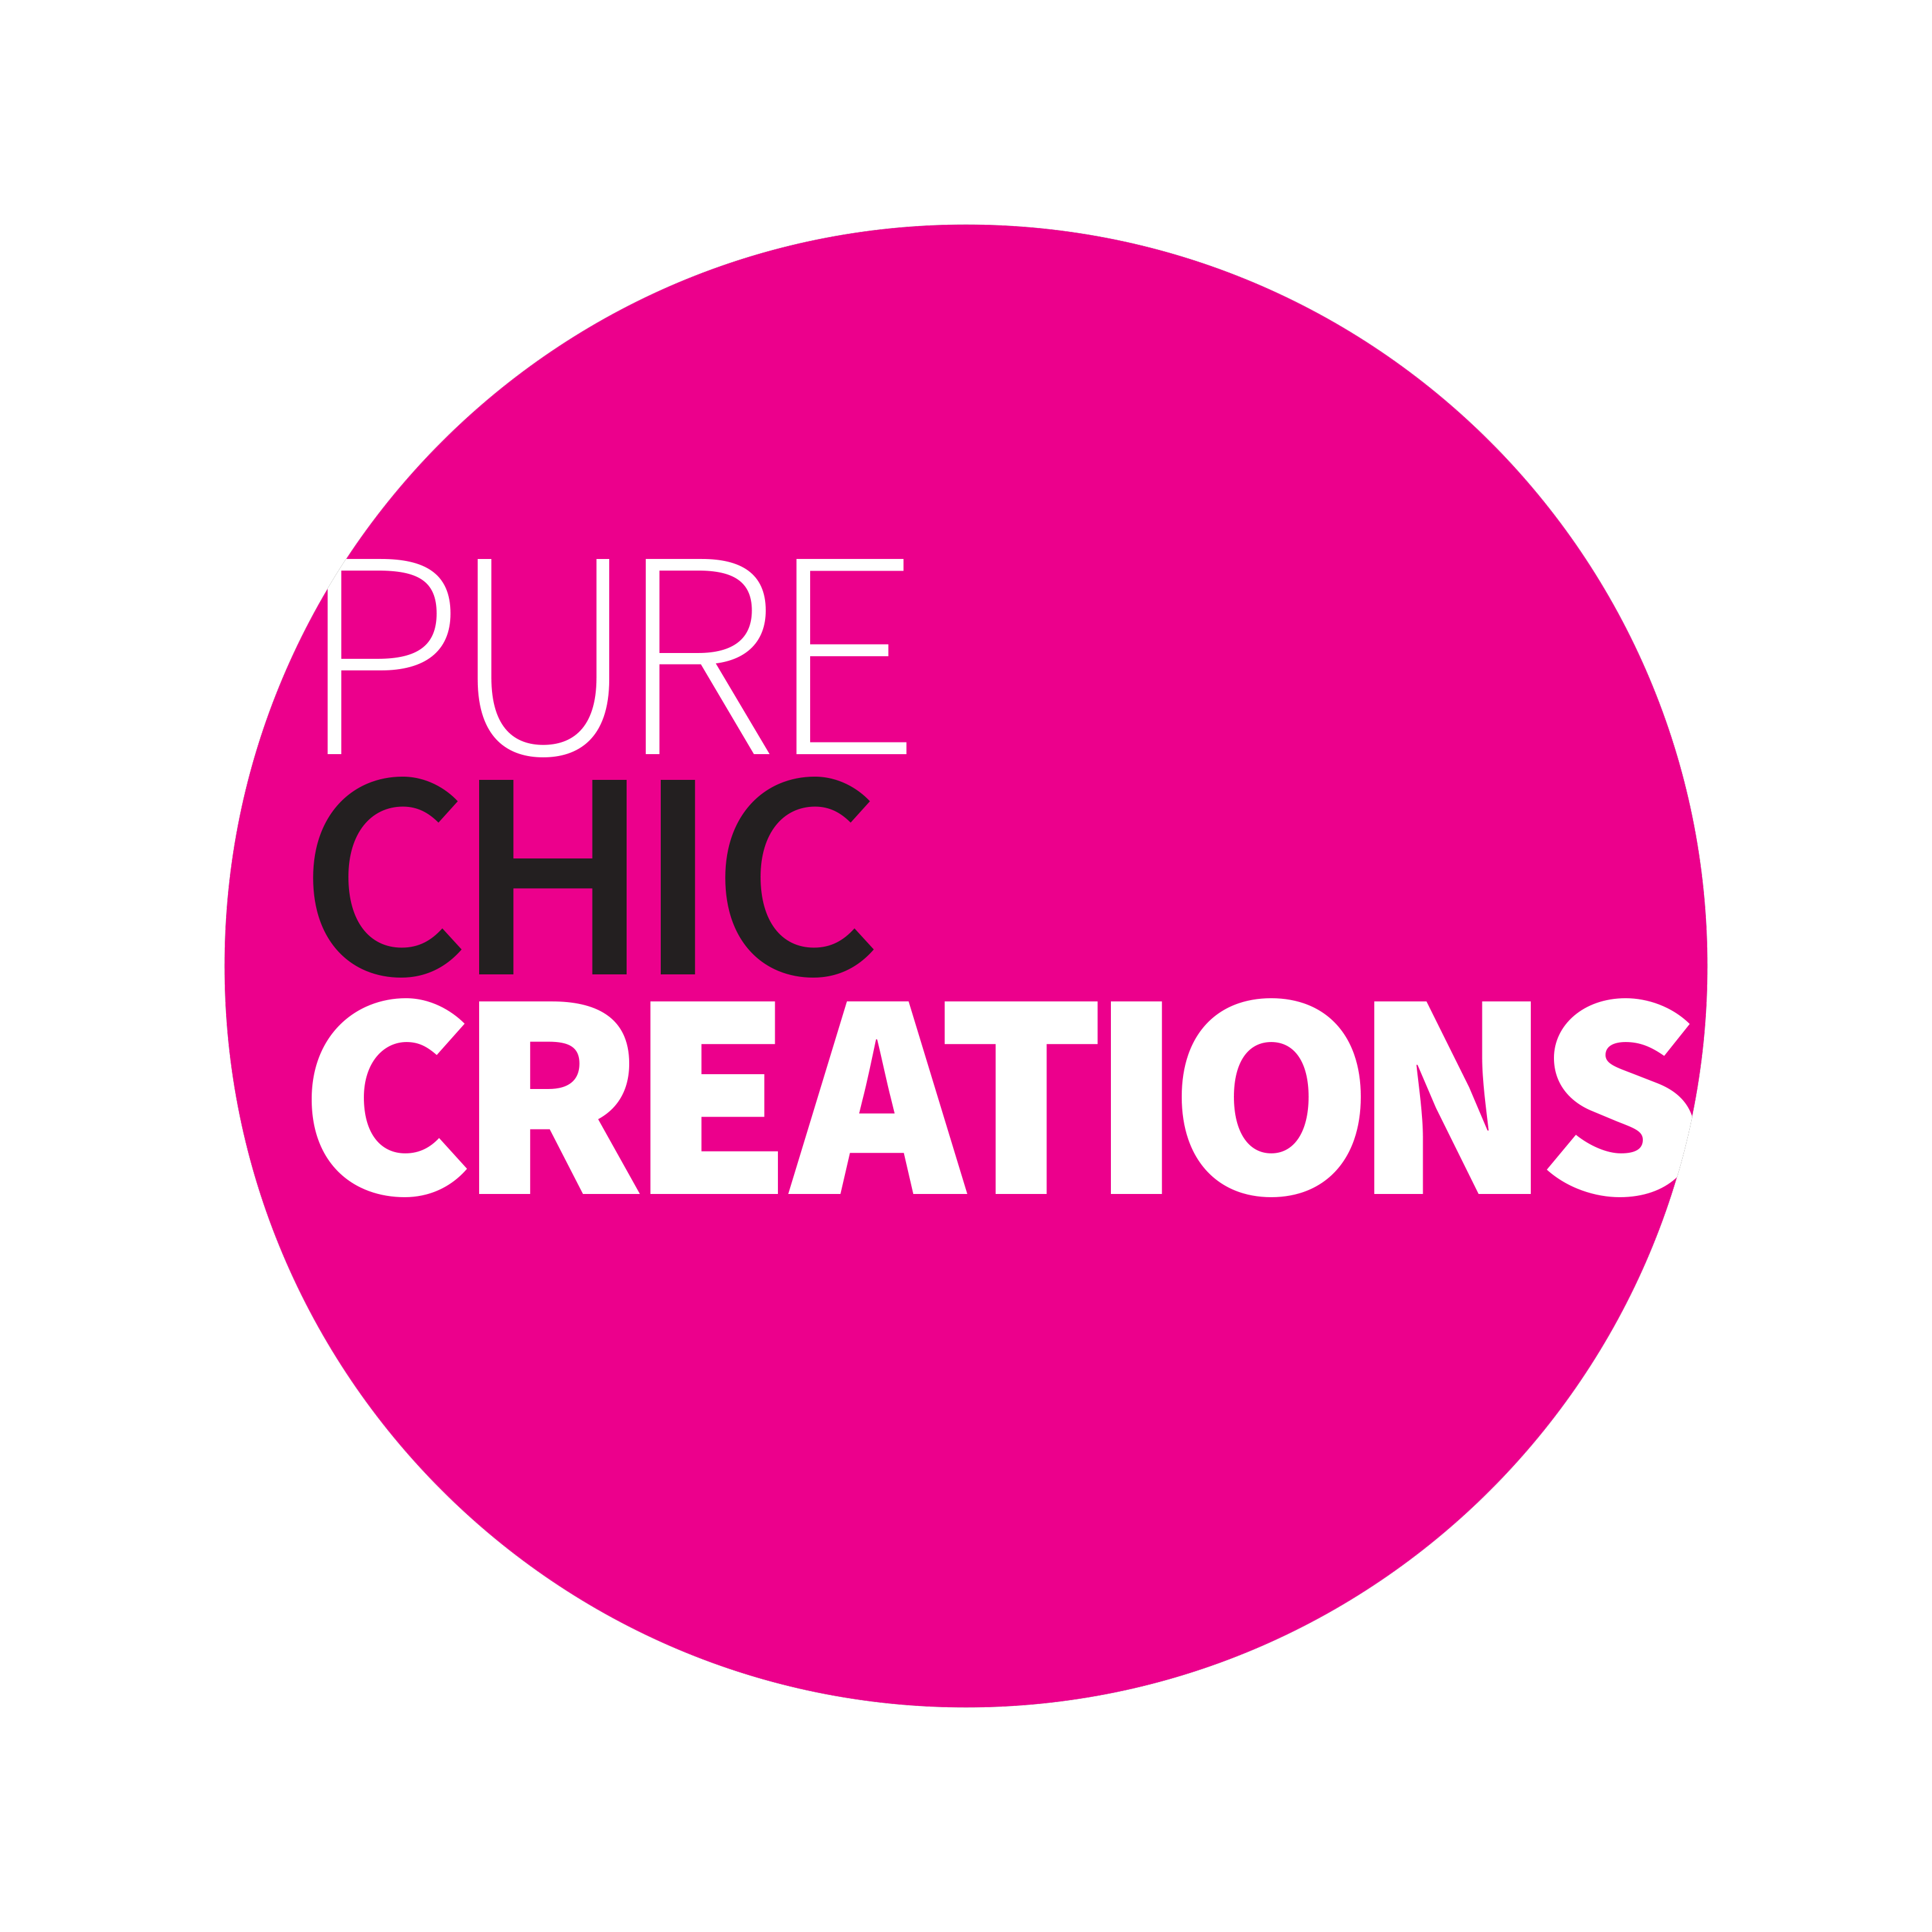 Pure Chic Creations